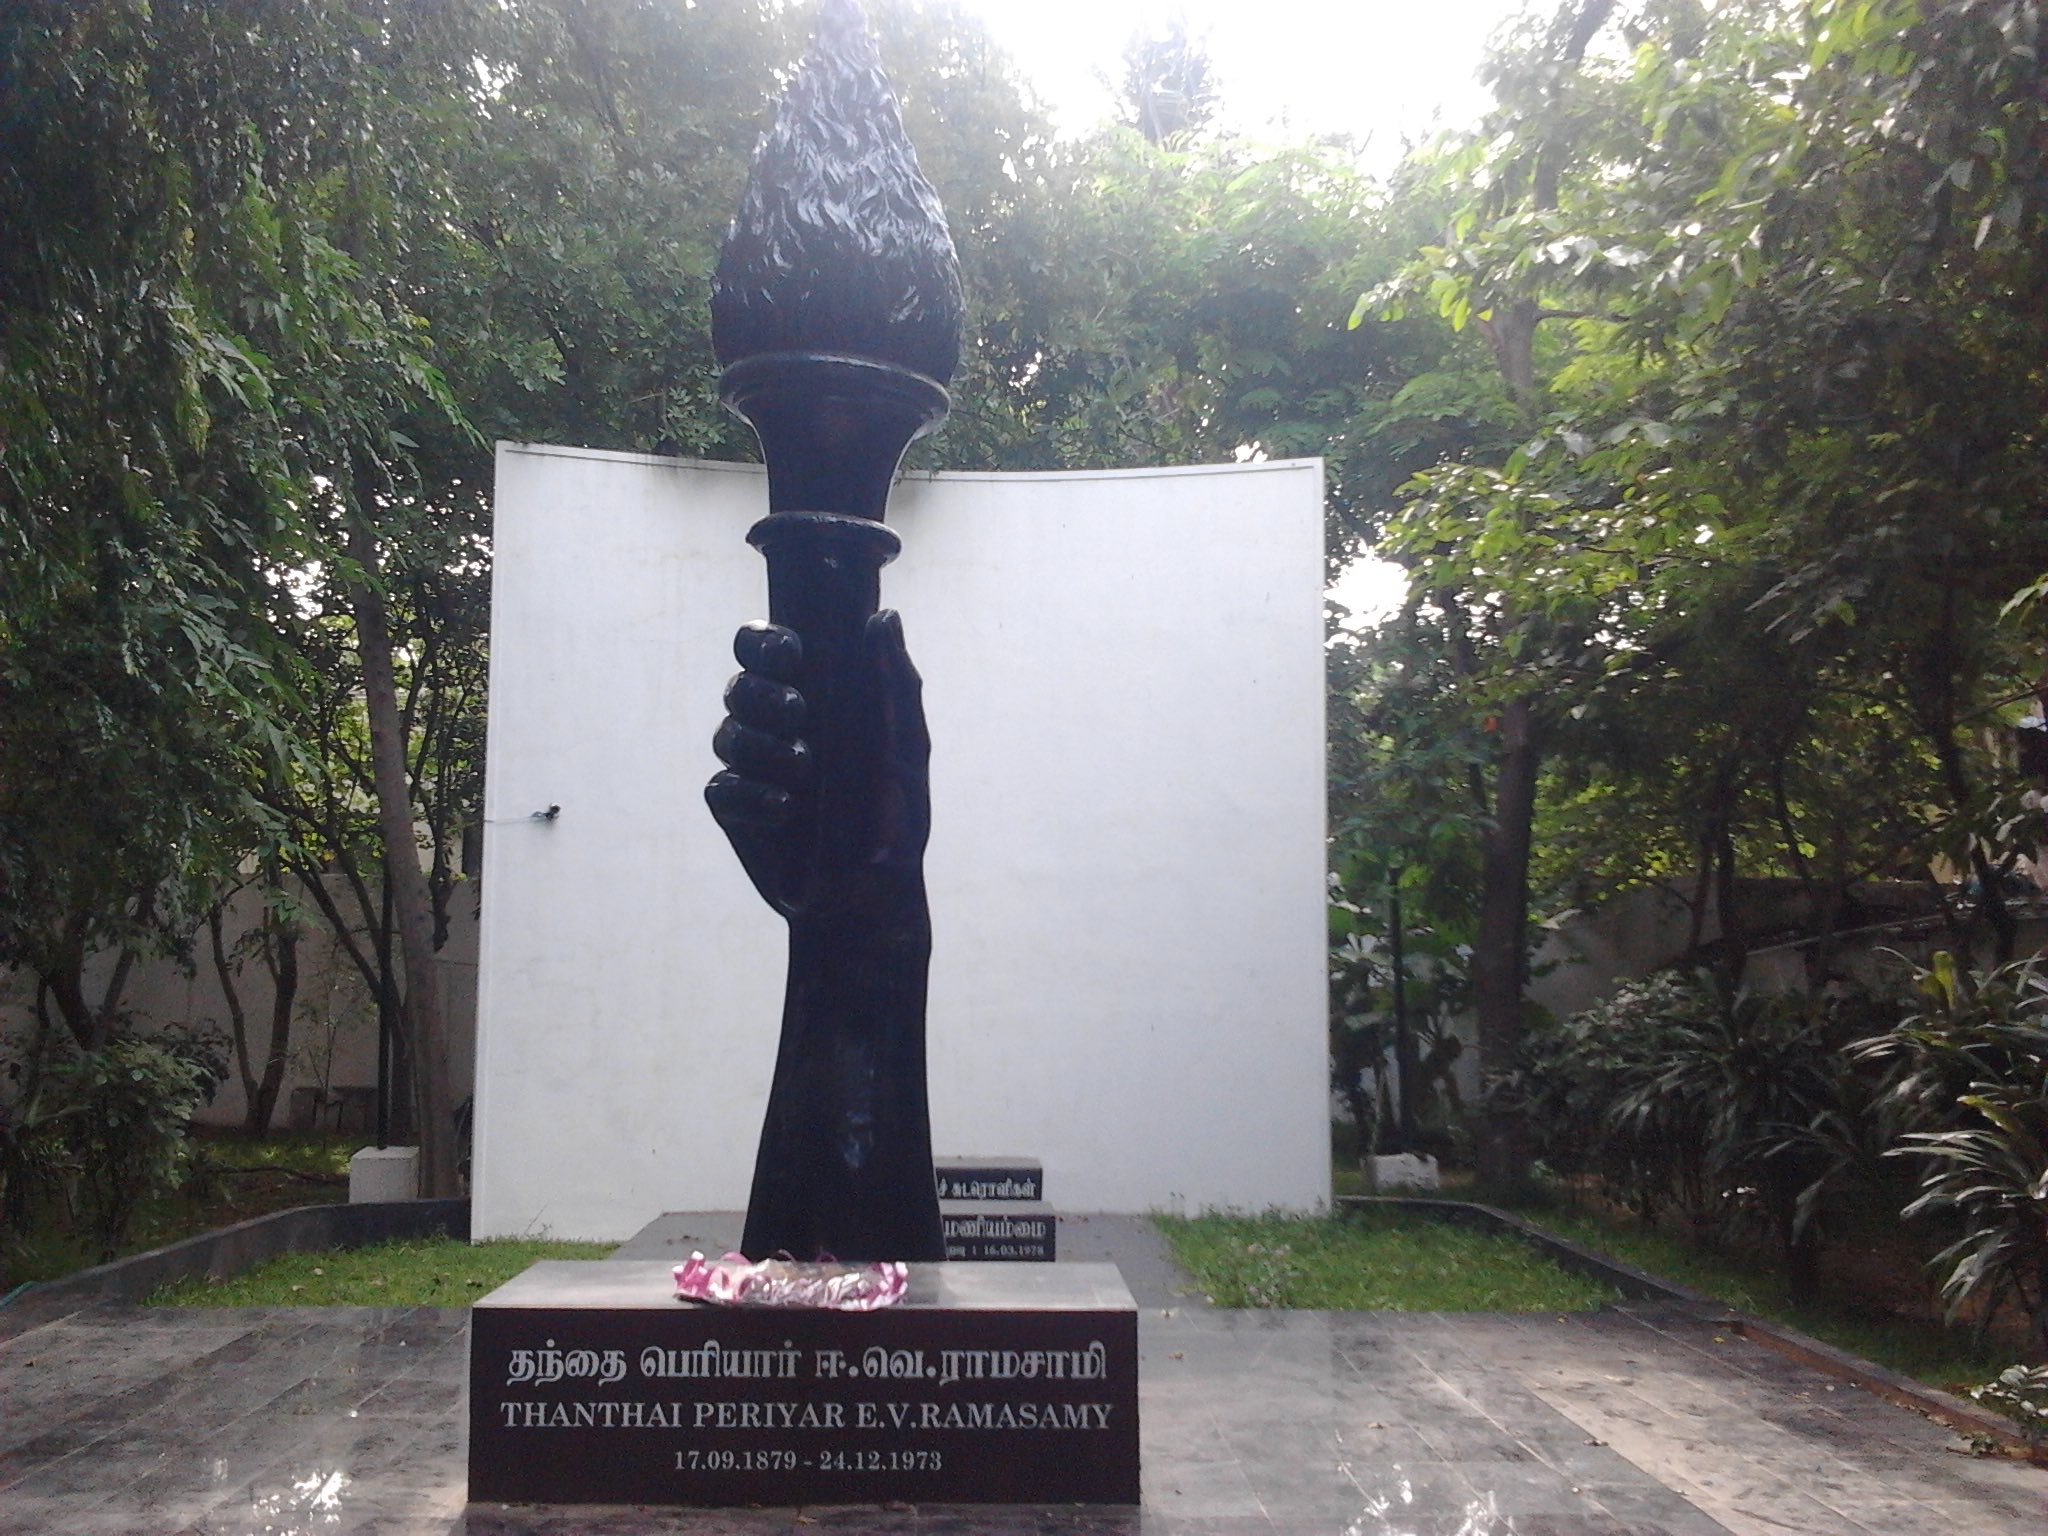 The Periyar memorial in Chennai. Credit: Wikimedia Commons